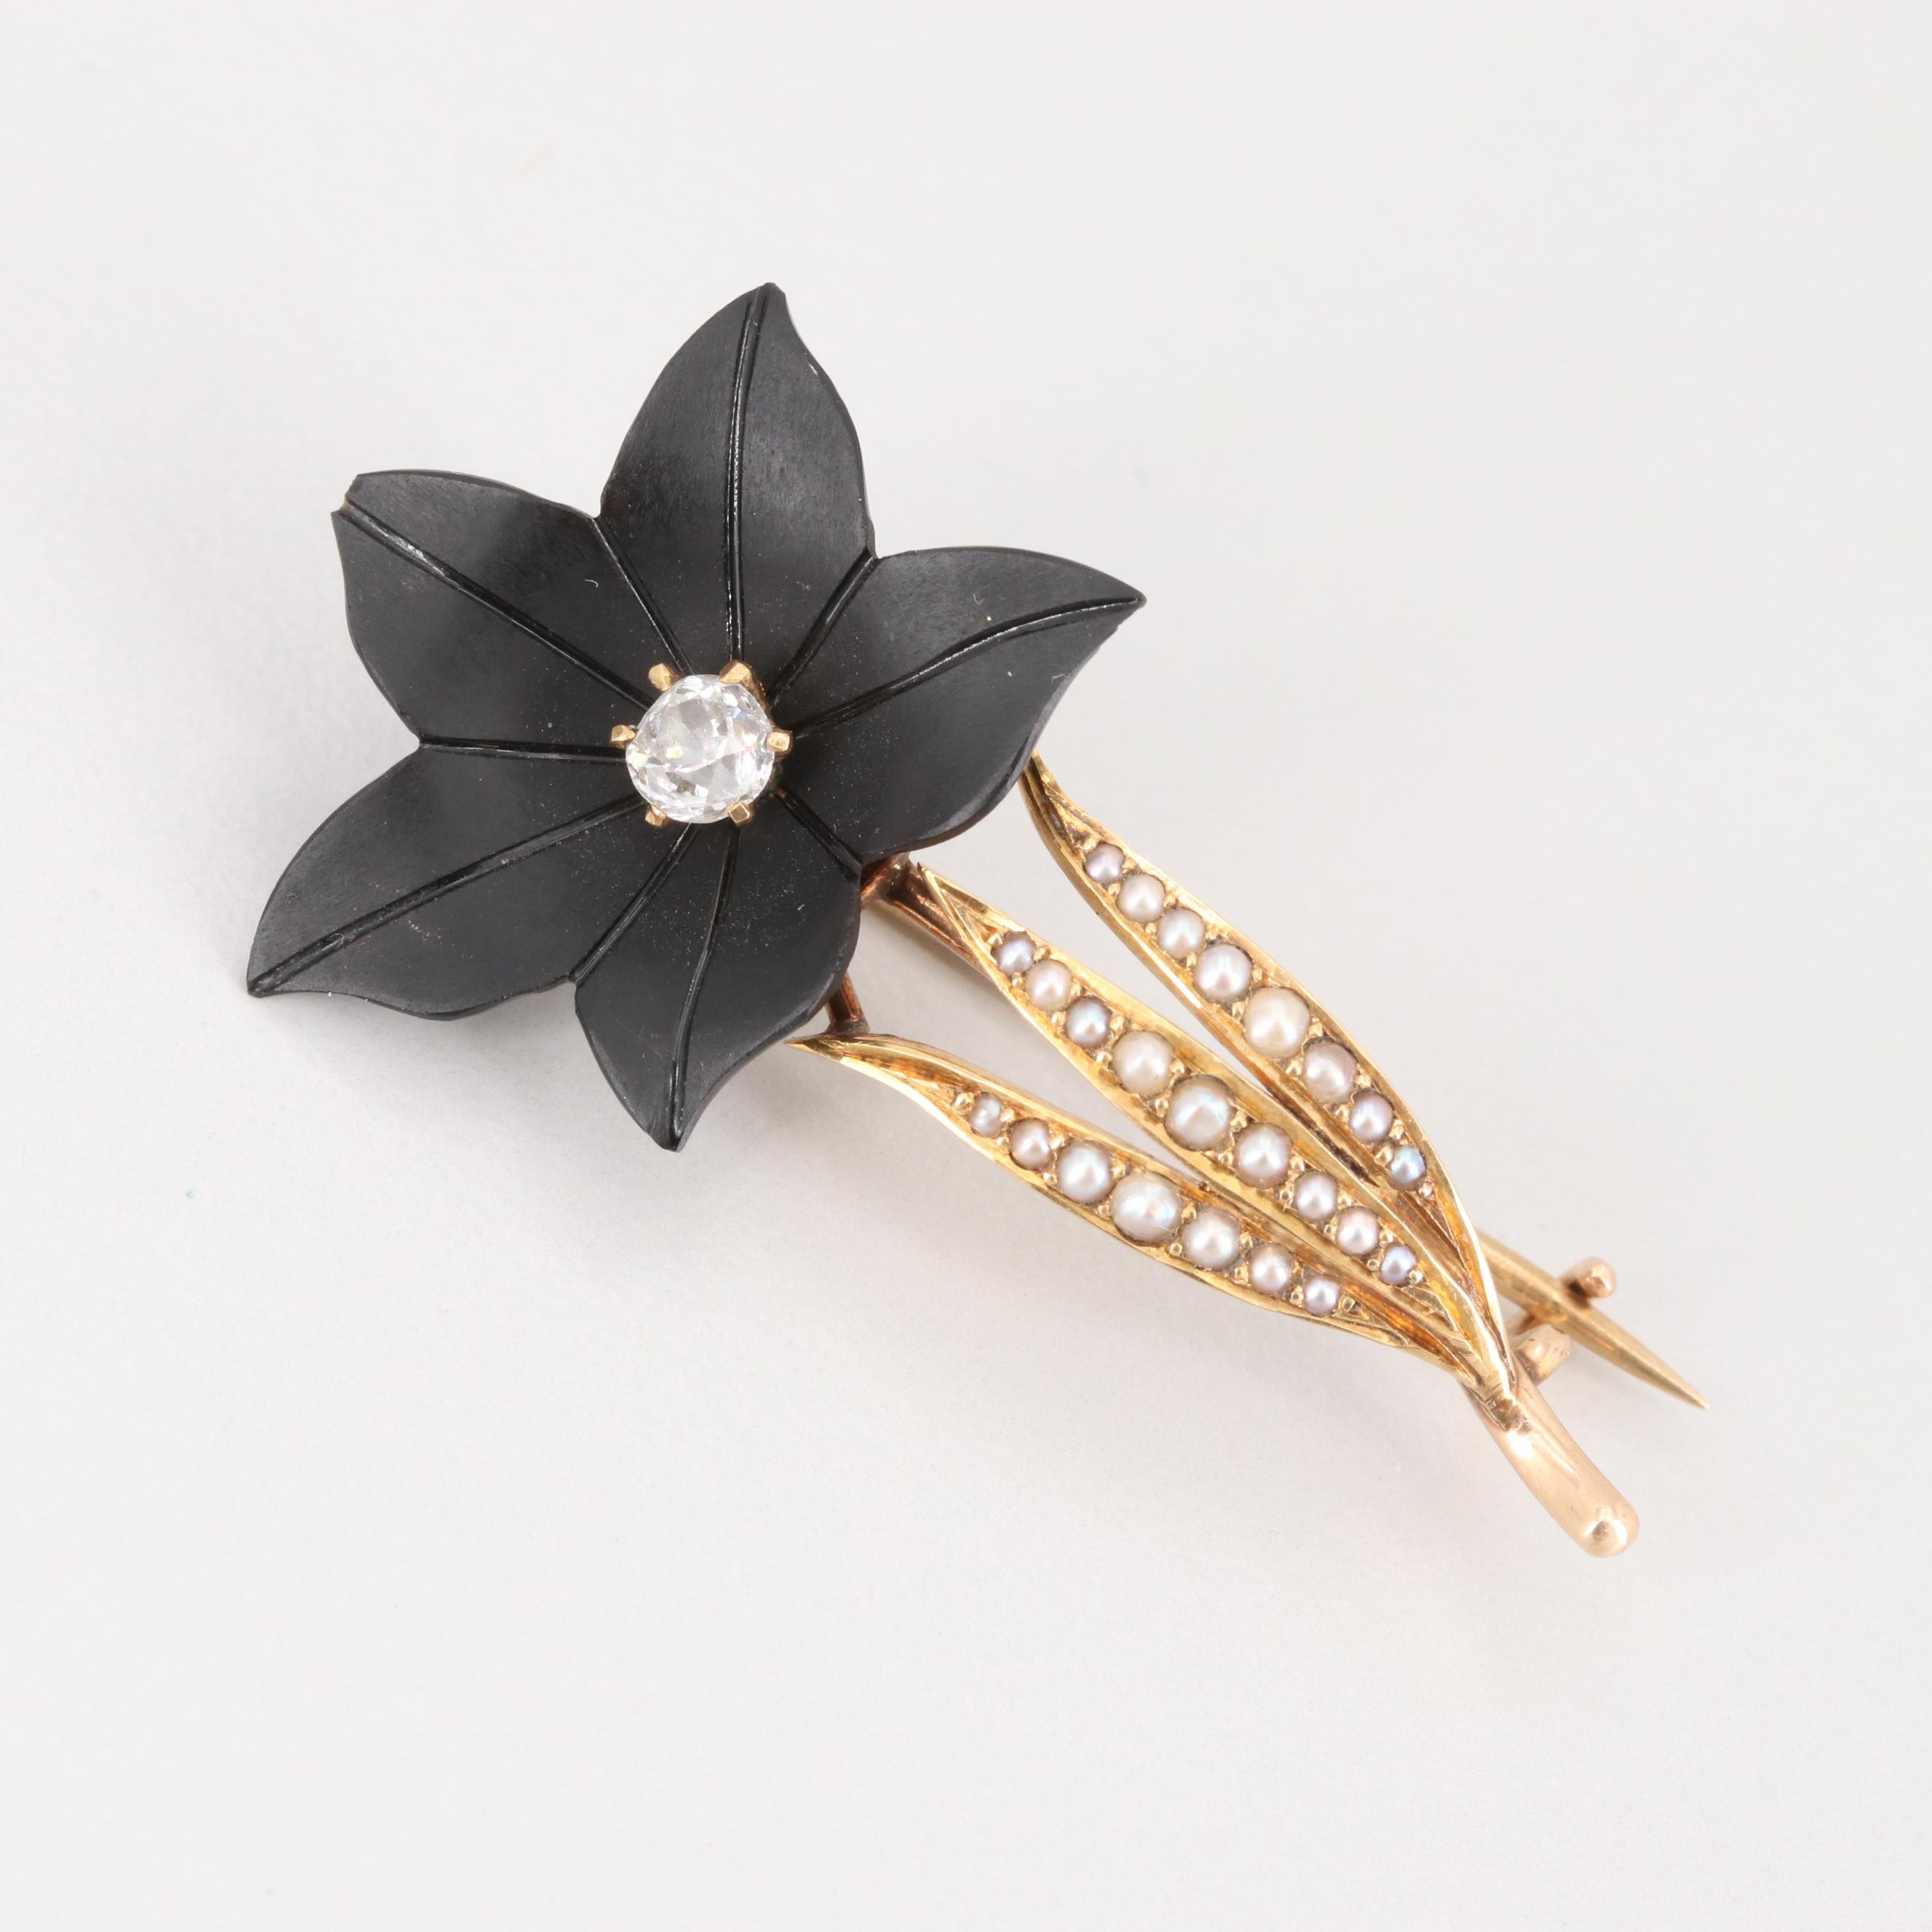 Late Victorian 14K Yellow Gold Diamond, Black Onyx and Seed Pearl Brooch